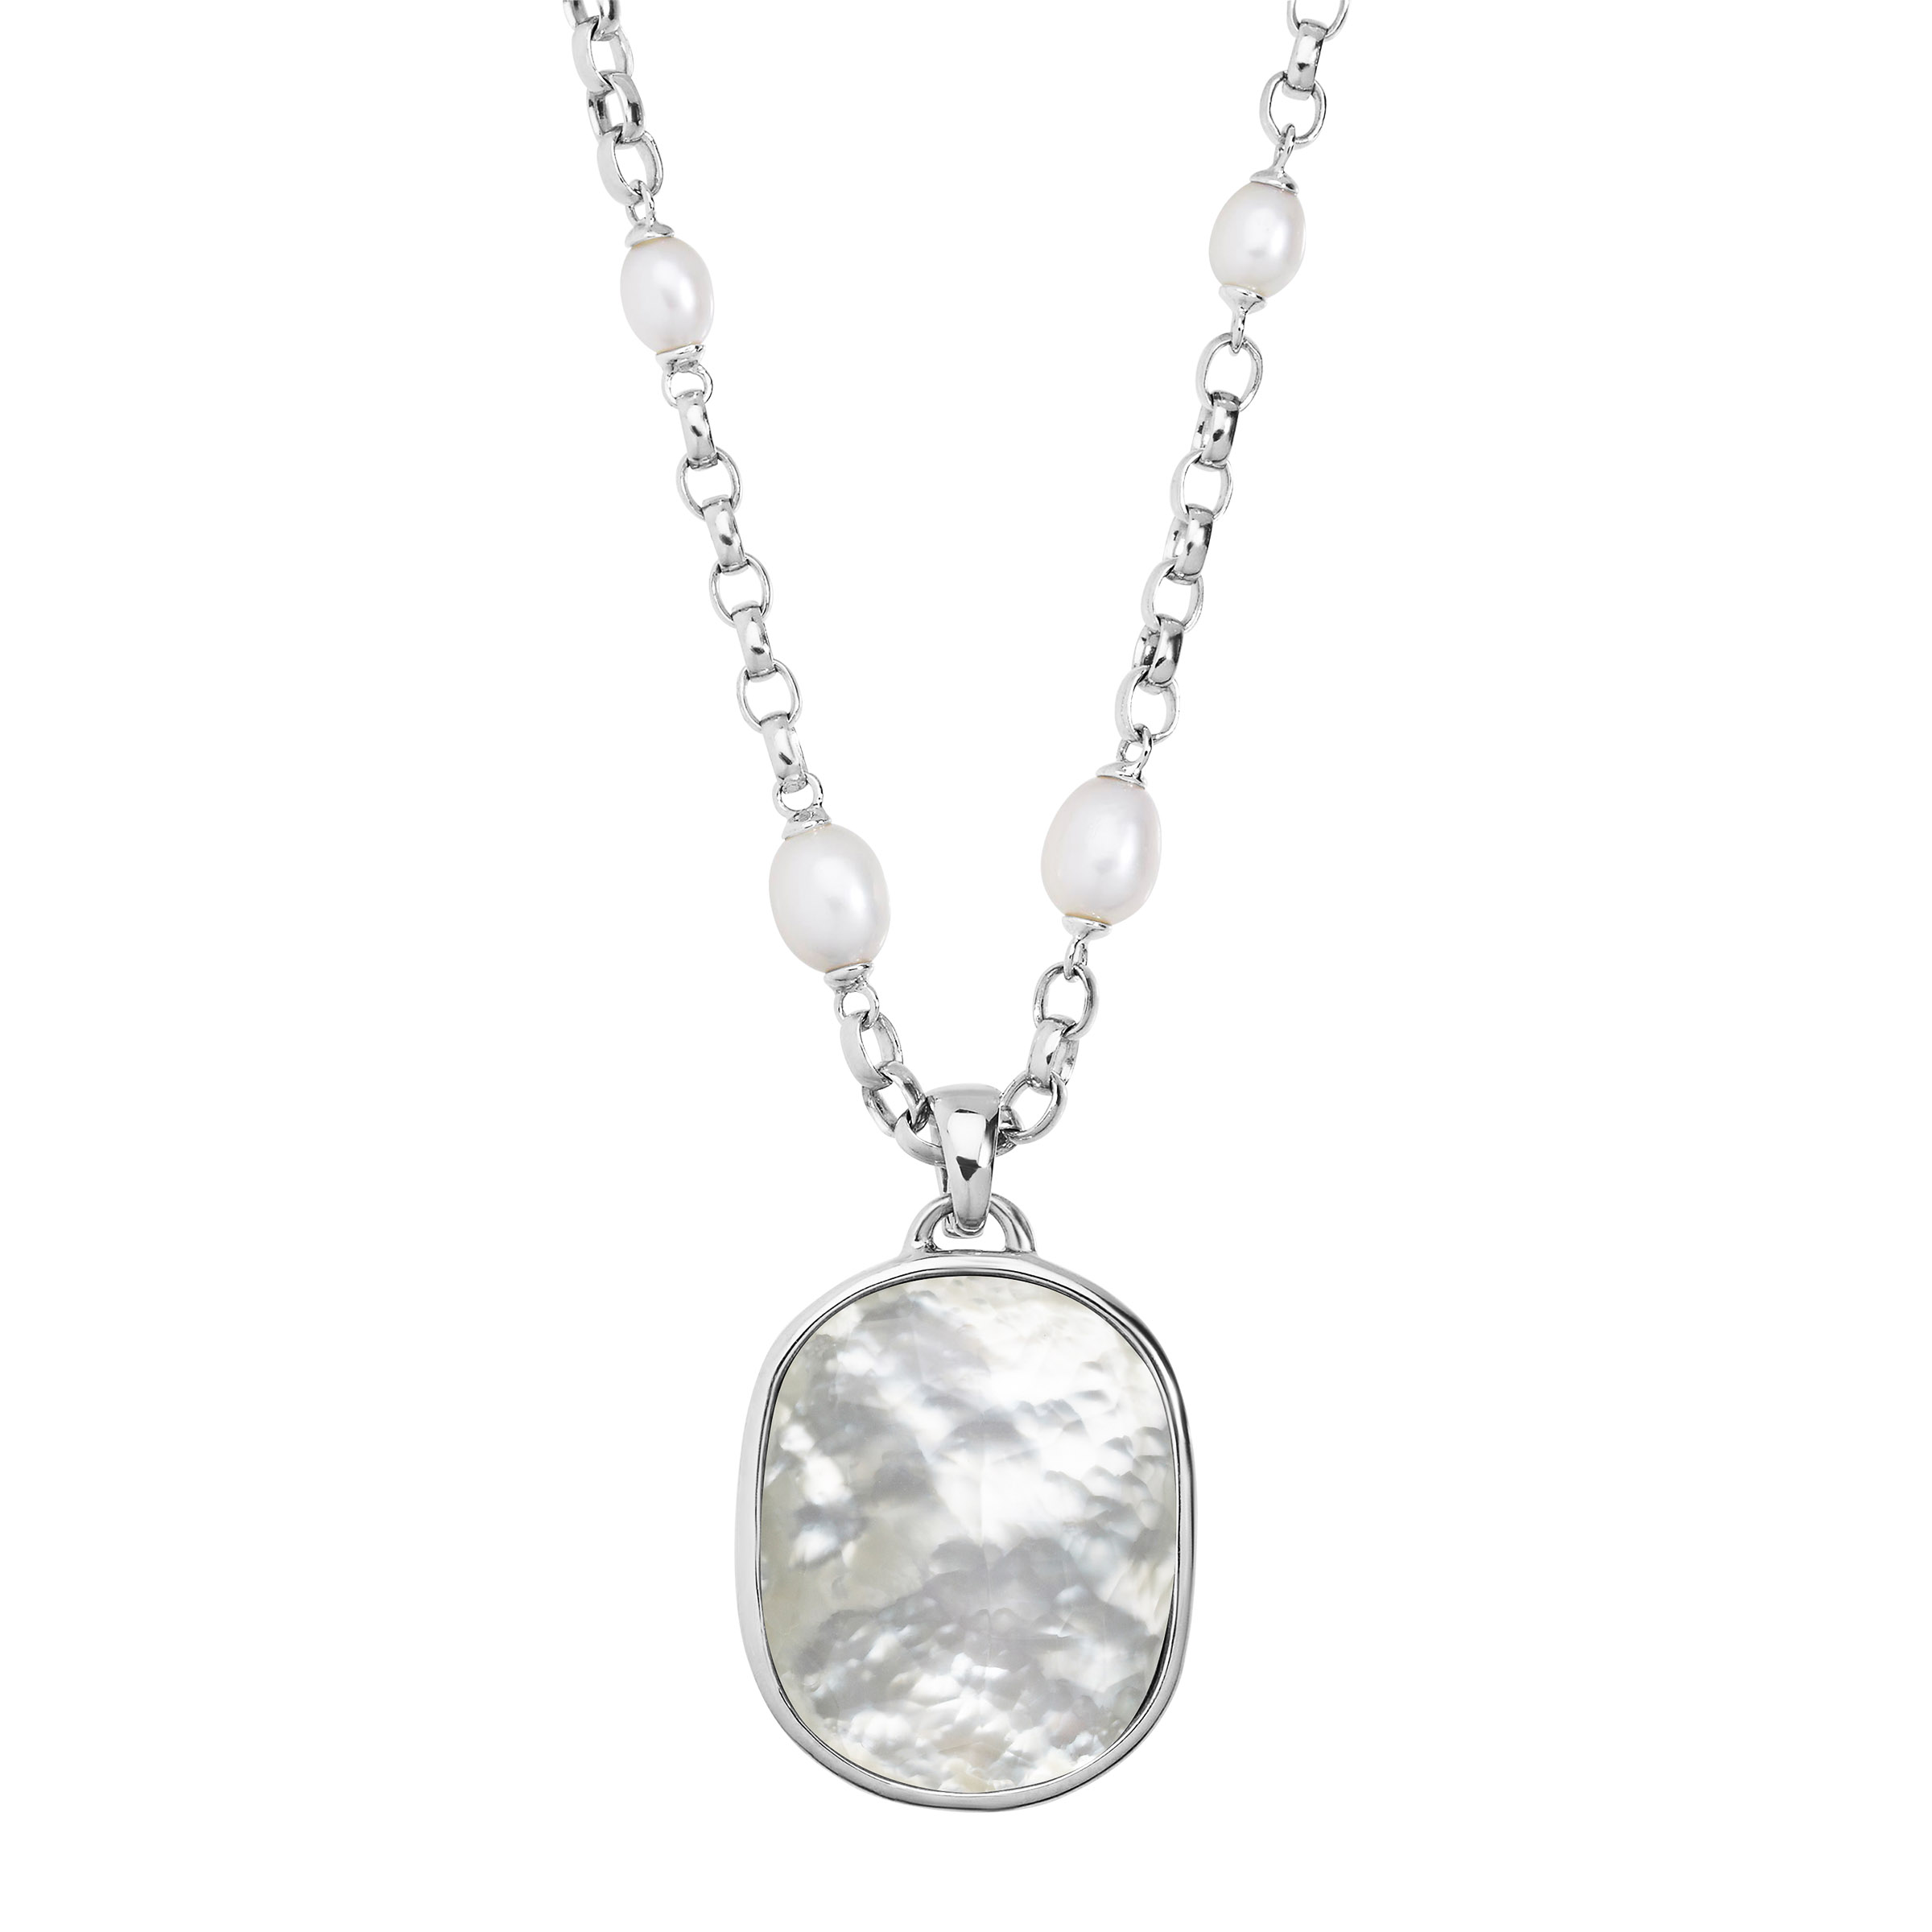 Honora Oval Freshwater Pearl Necklace with Mother-of-Pearl Doublet Enhancer in Sterling Silver by Richline Group